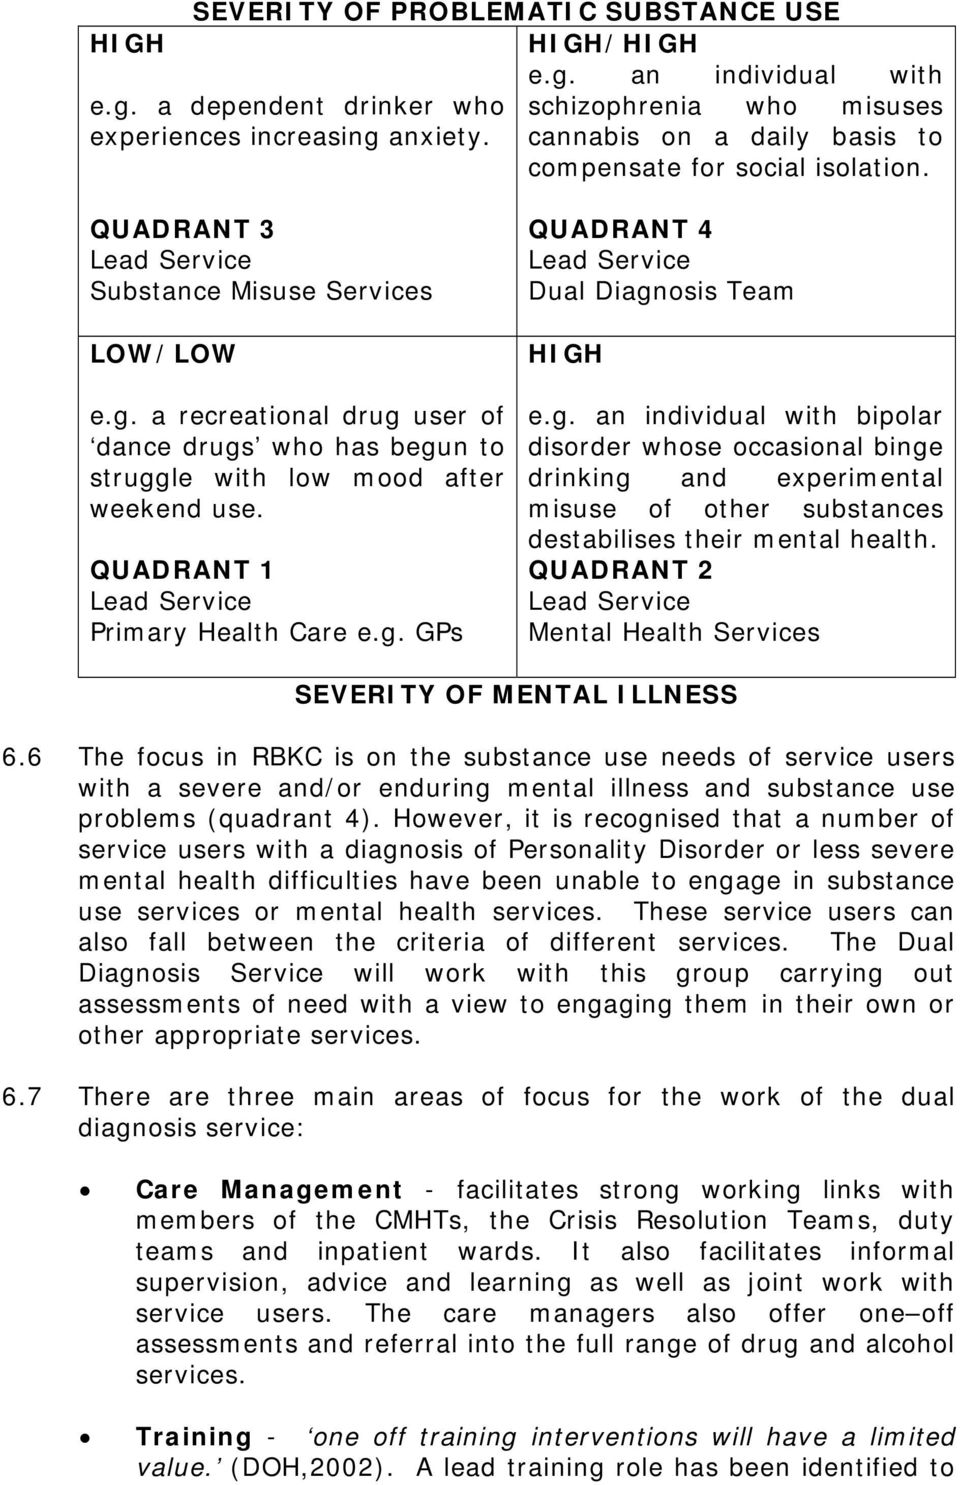 QUADRANT 1 Lead Service Primary Health Care e.g. GPs QUADRANT 4 Lead Service Dual Diagnosis Team HIGH e.g. an individual with bipolar disorder whose occasional binge drinking and experimental misuse of other substances destabilises their mental health.